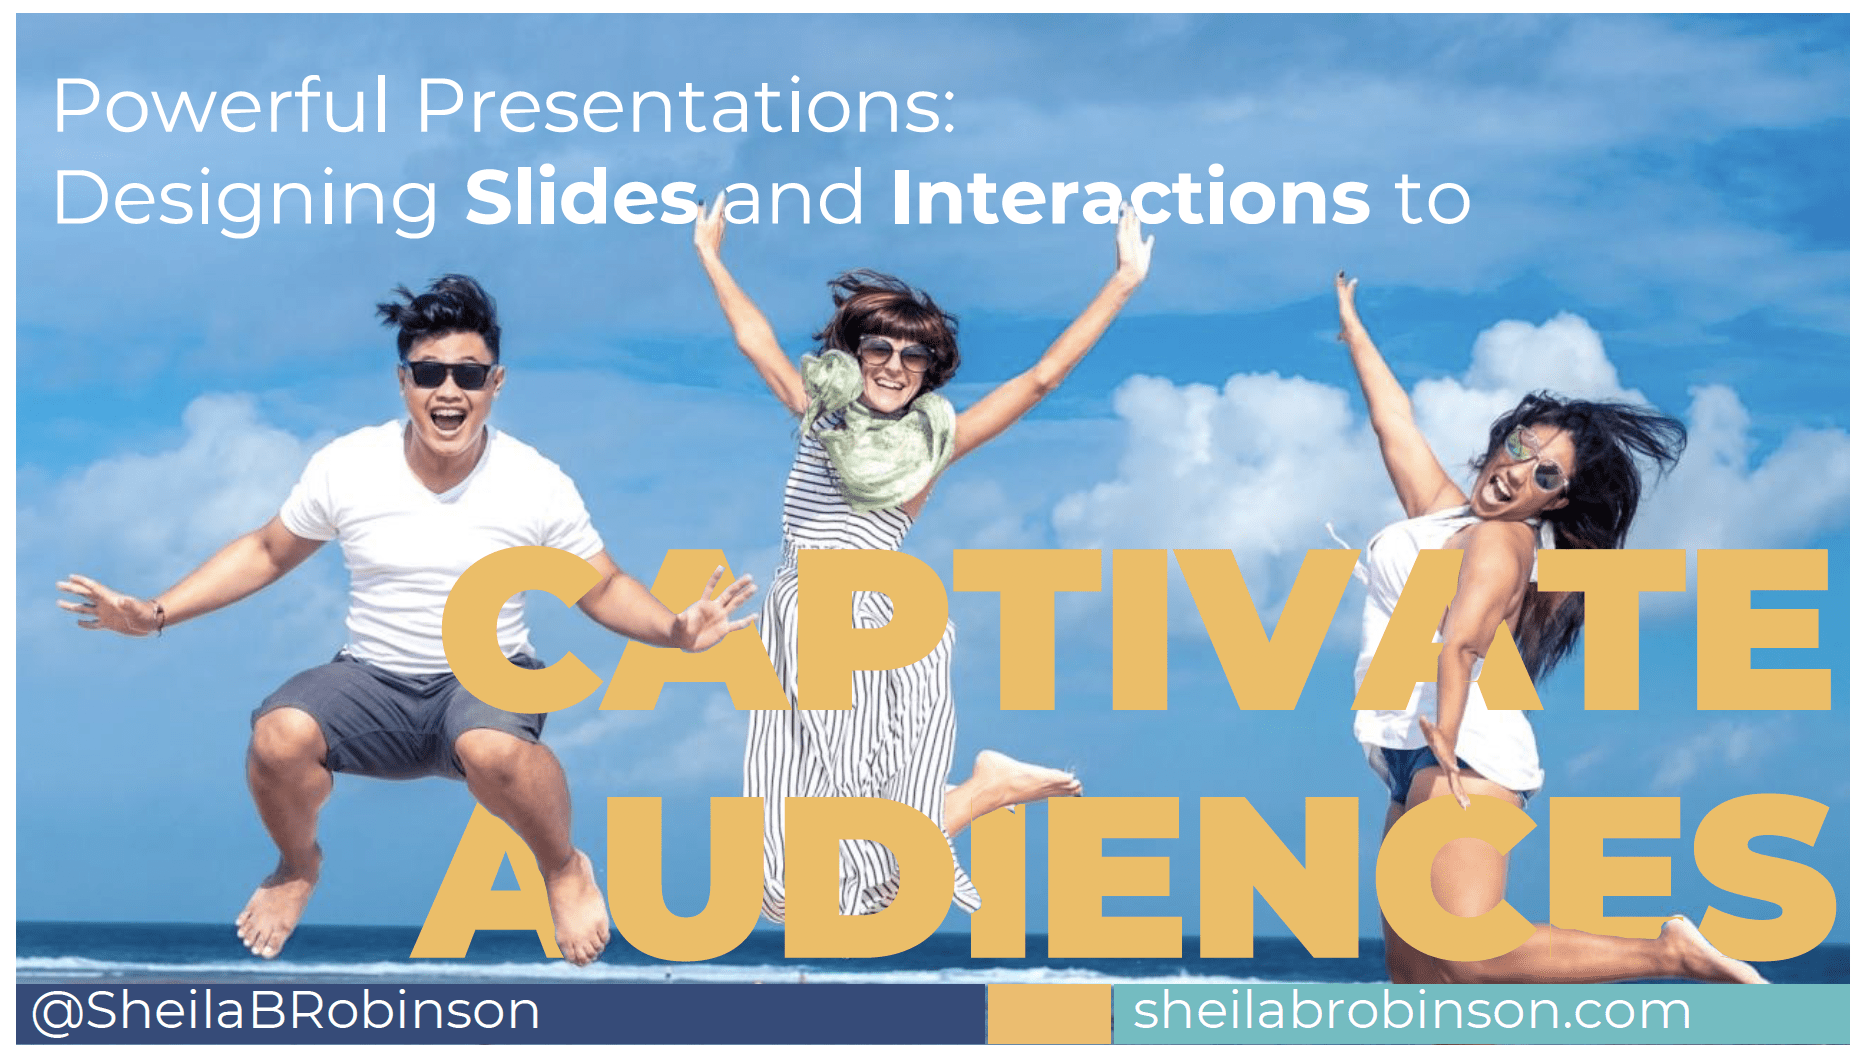 Powerful Presentations: Designing Slides and Interactions to Captivate Audiences